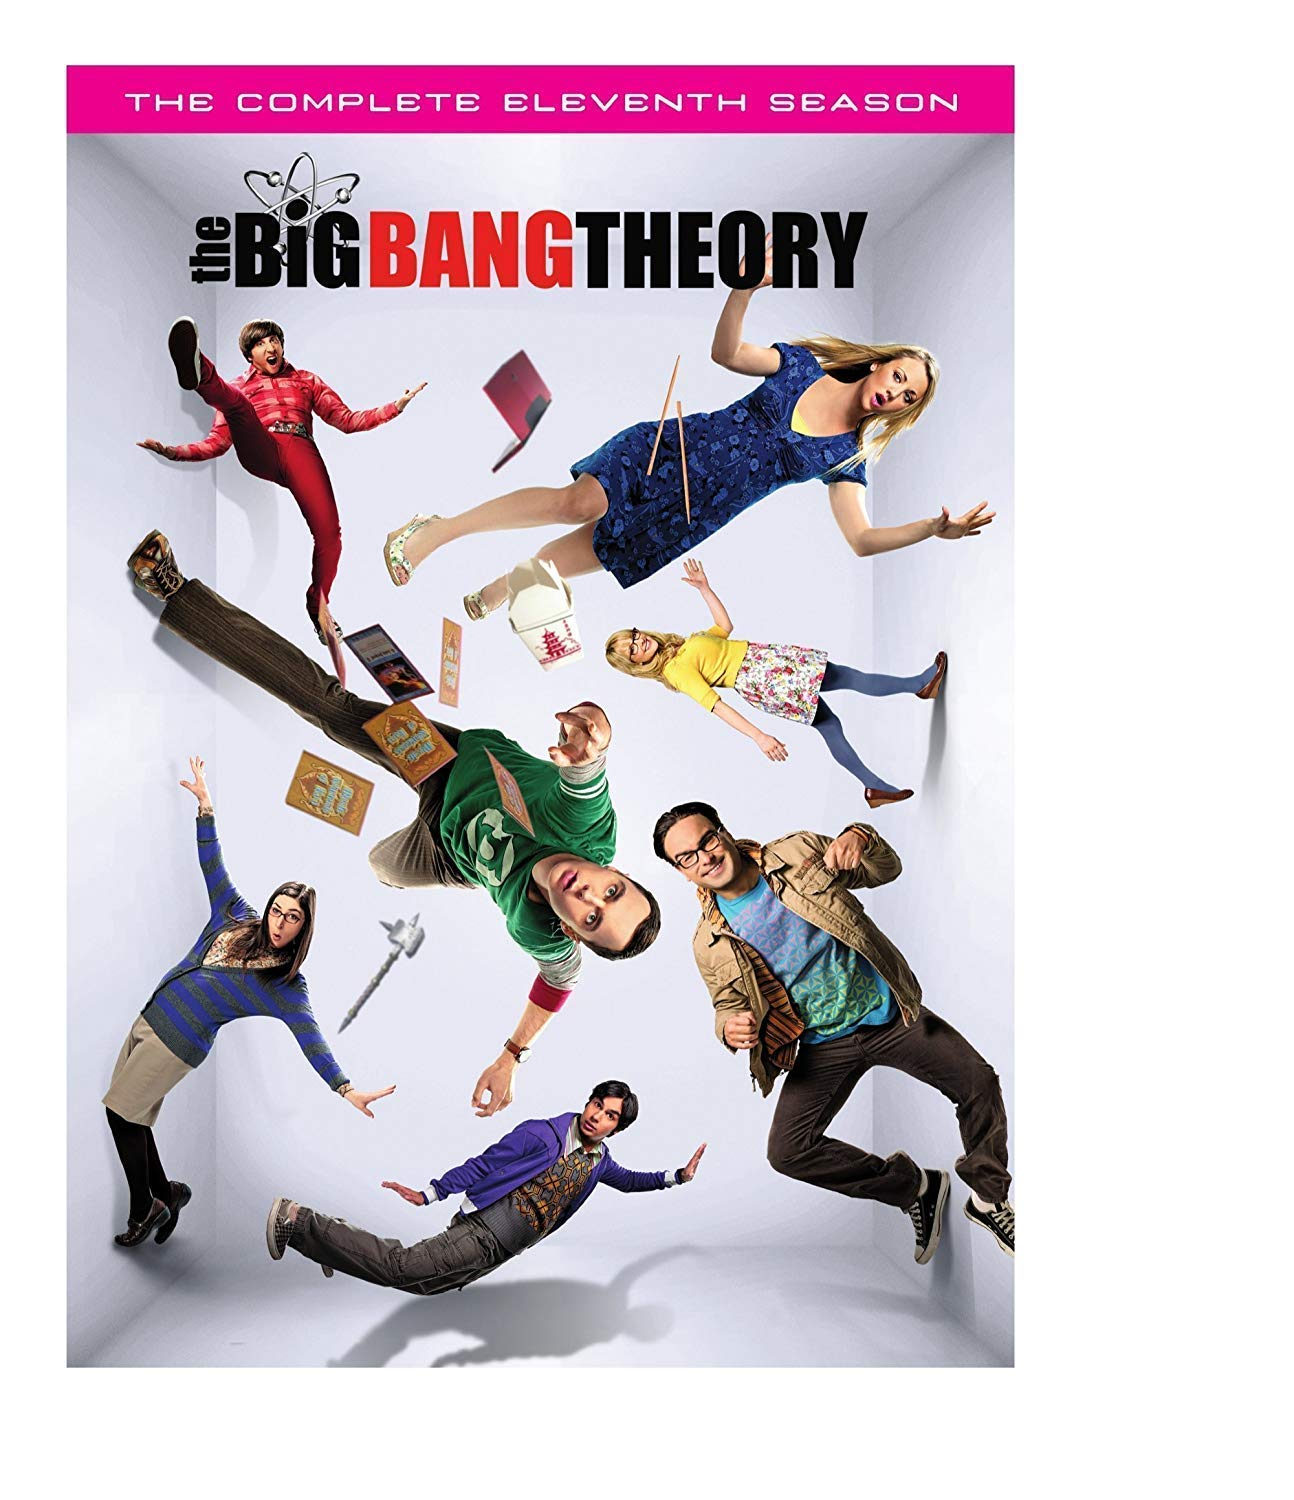 The Big Bang Theory Season 11 (DVD) MediaOne